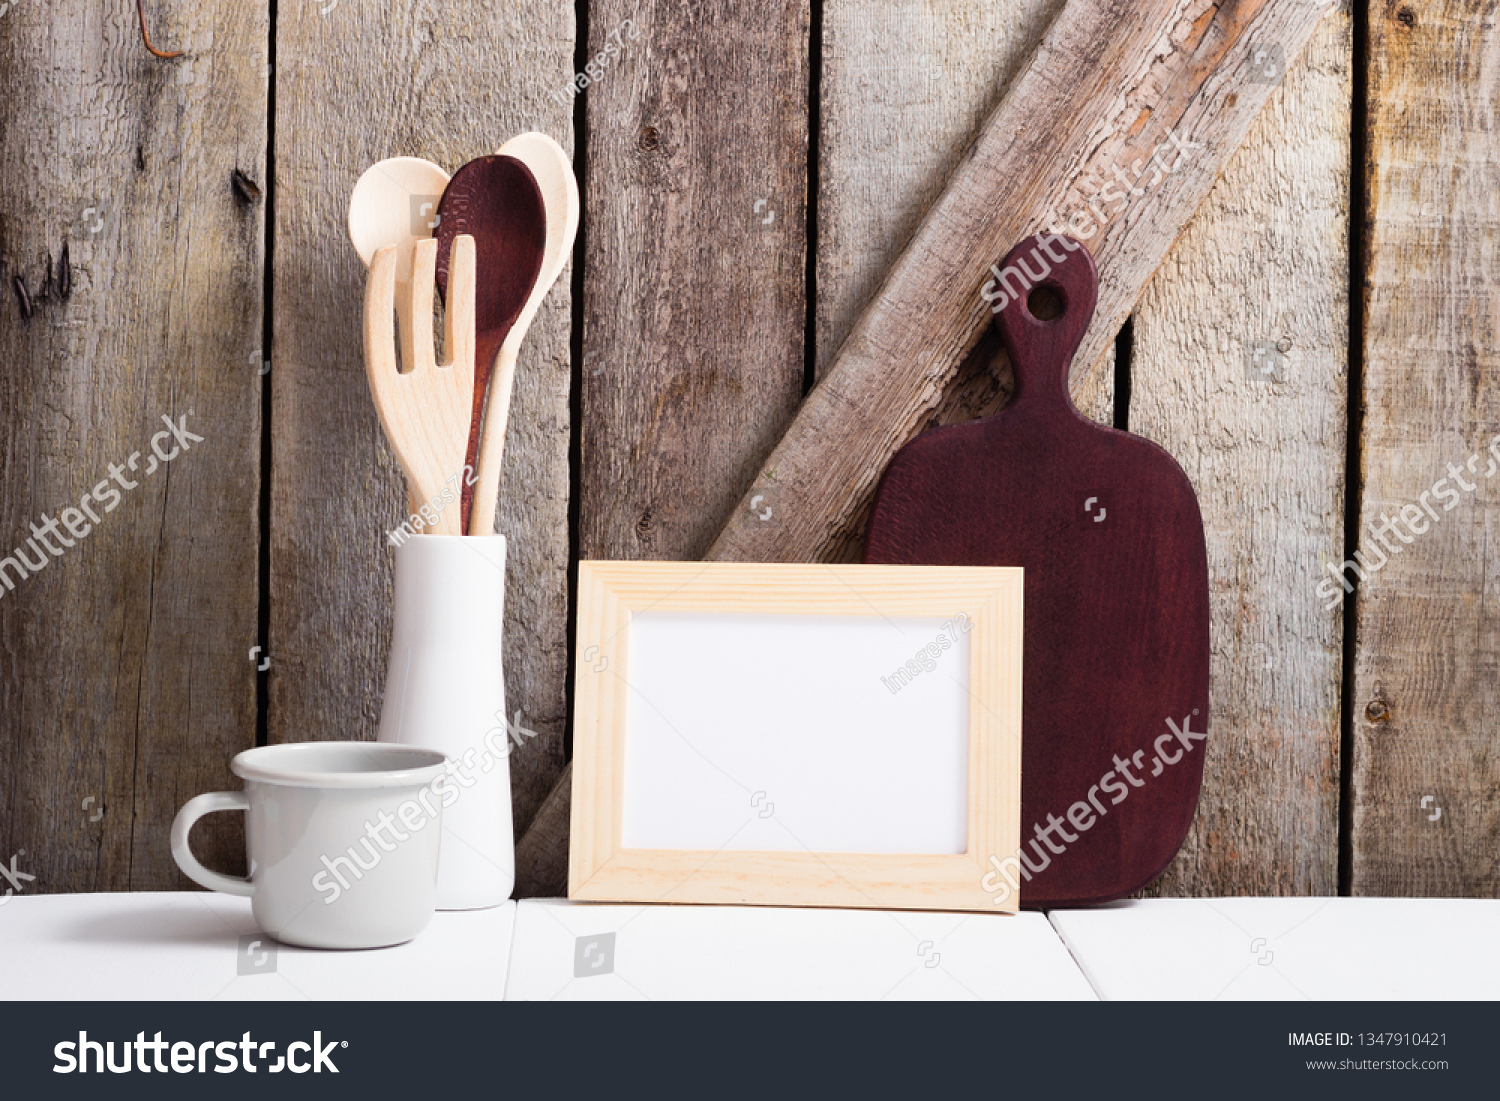 Picture Frame Cutting Board Old Wood Stock Photo Edit Now 1347910421